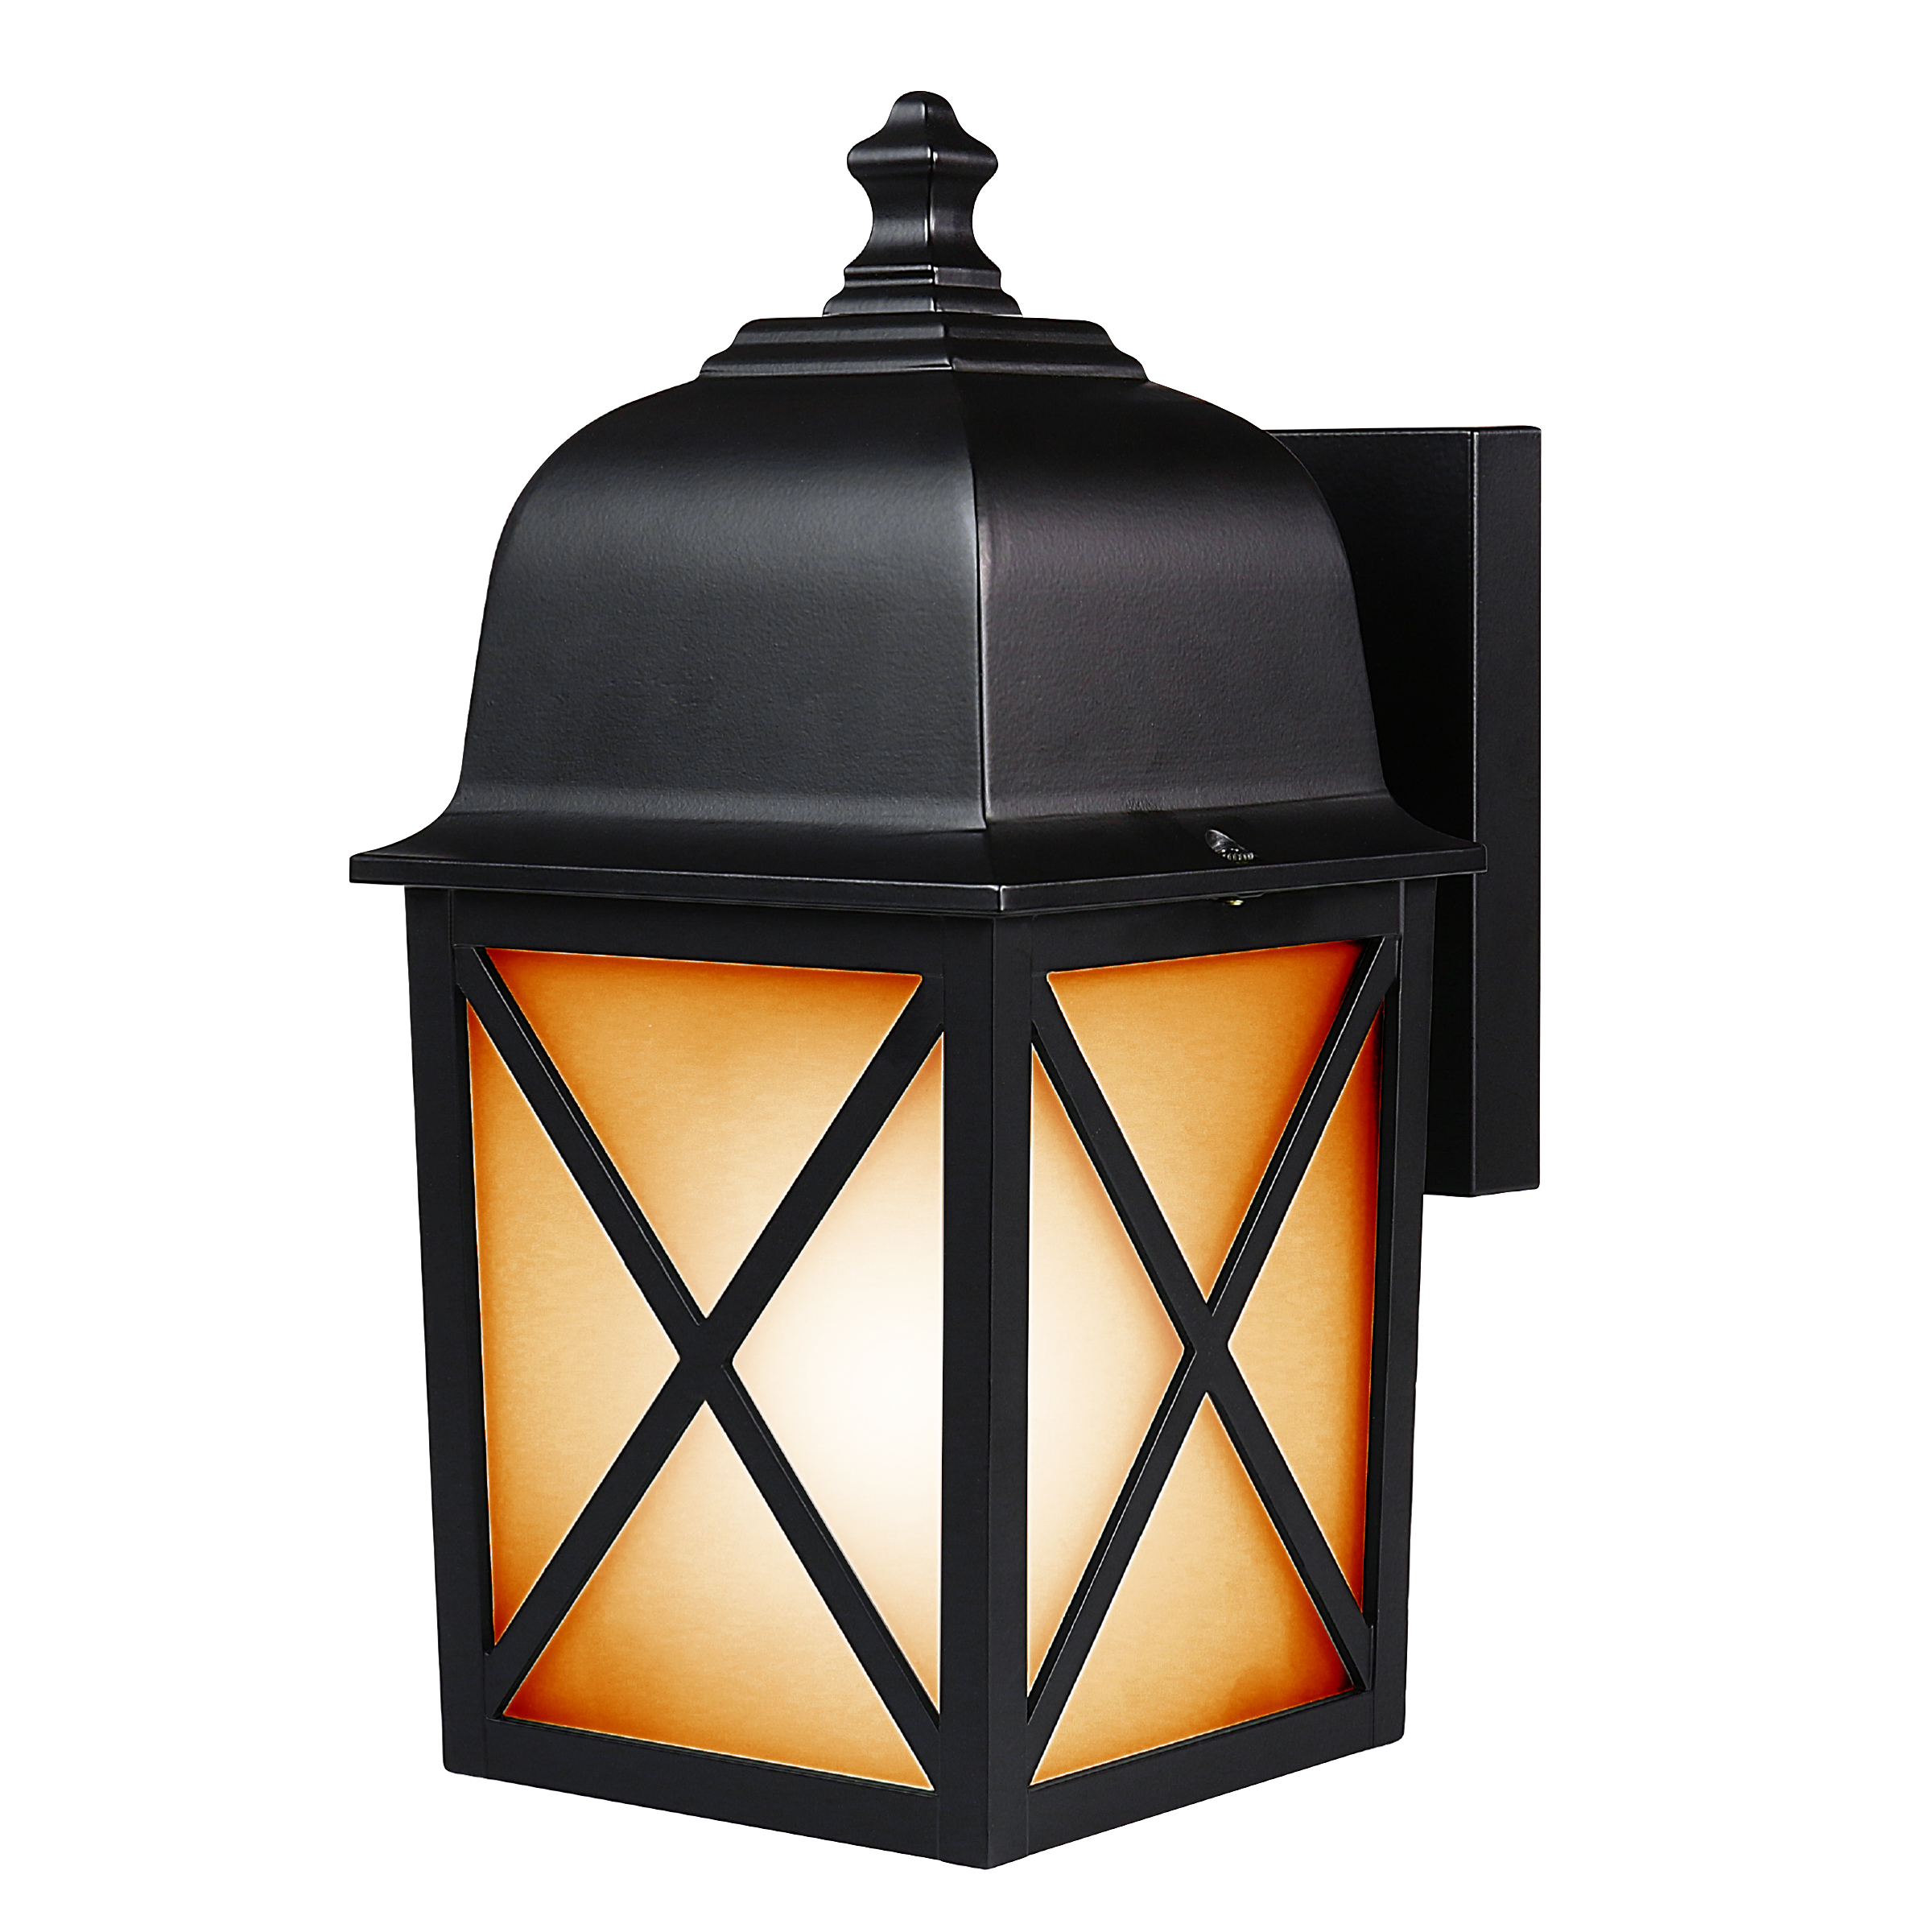 300 Lumen Soft White & Flame Effect Lantern